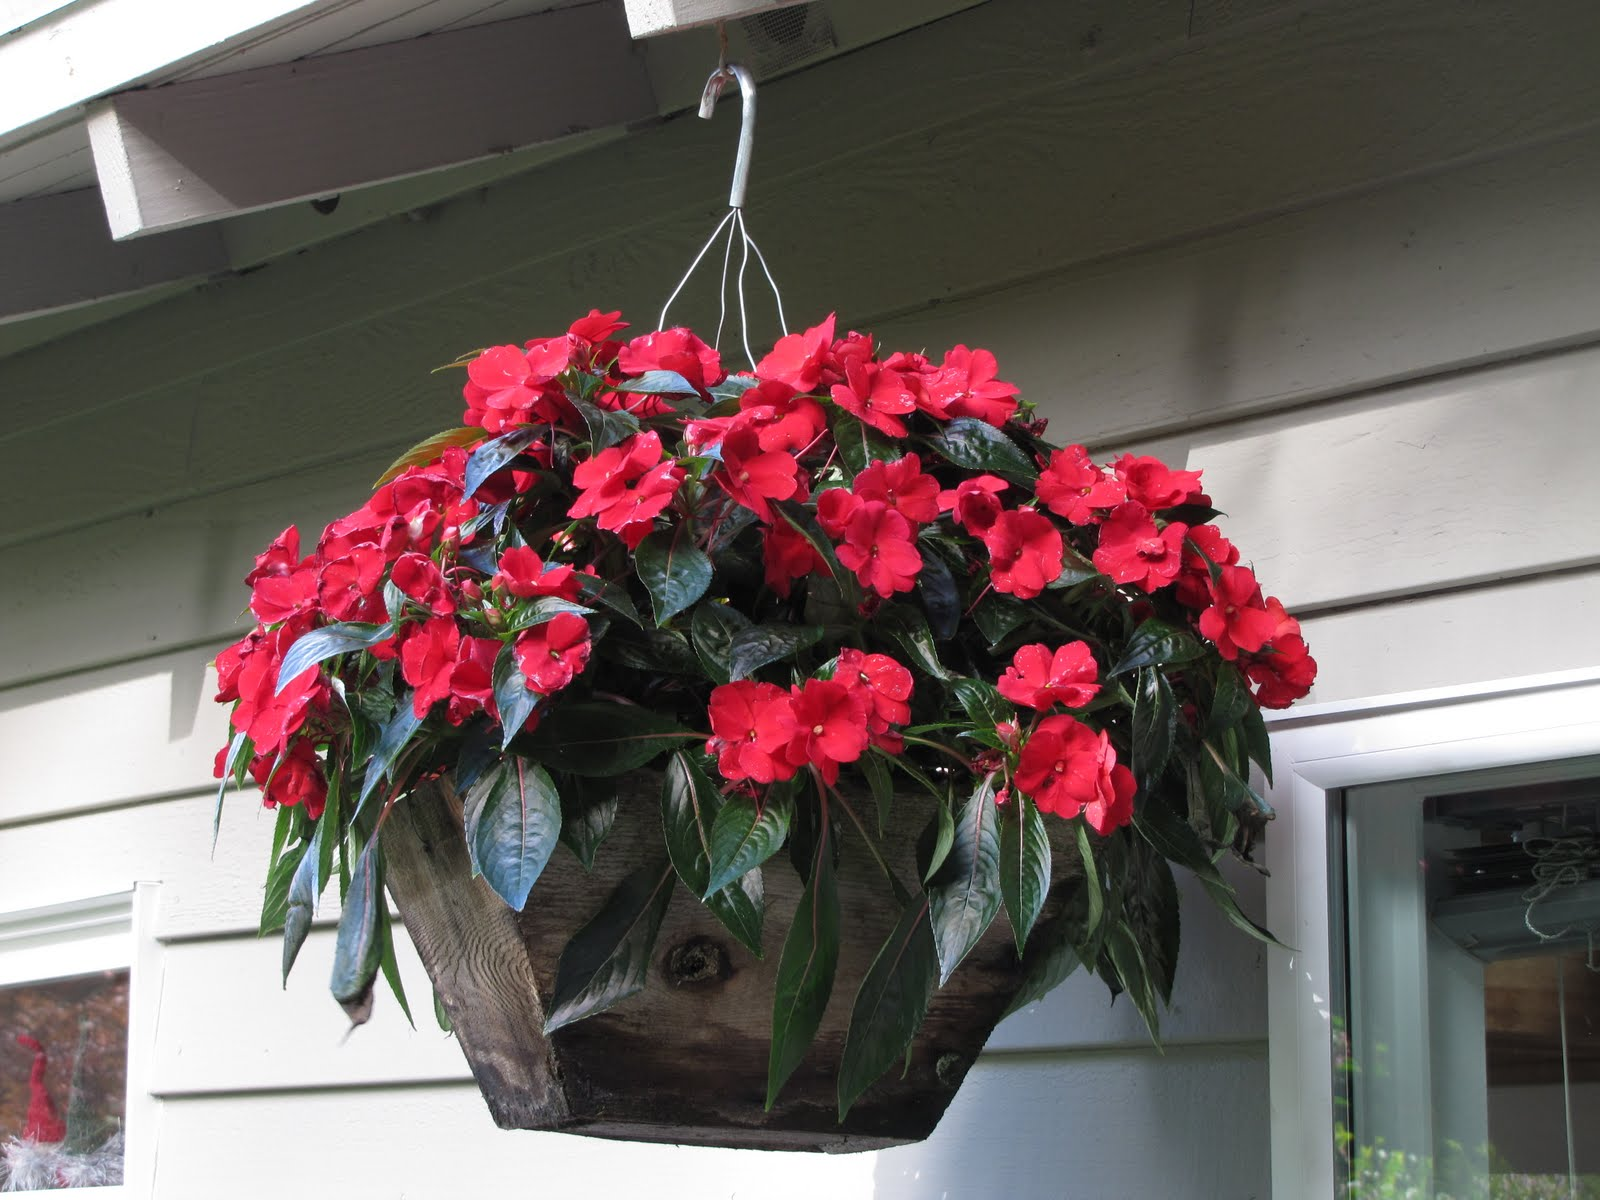 northwestern perspectives hanging baskets and containers. Black Bedroom Furniture Sets. Home Design Ideas